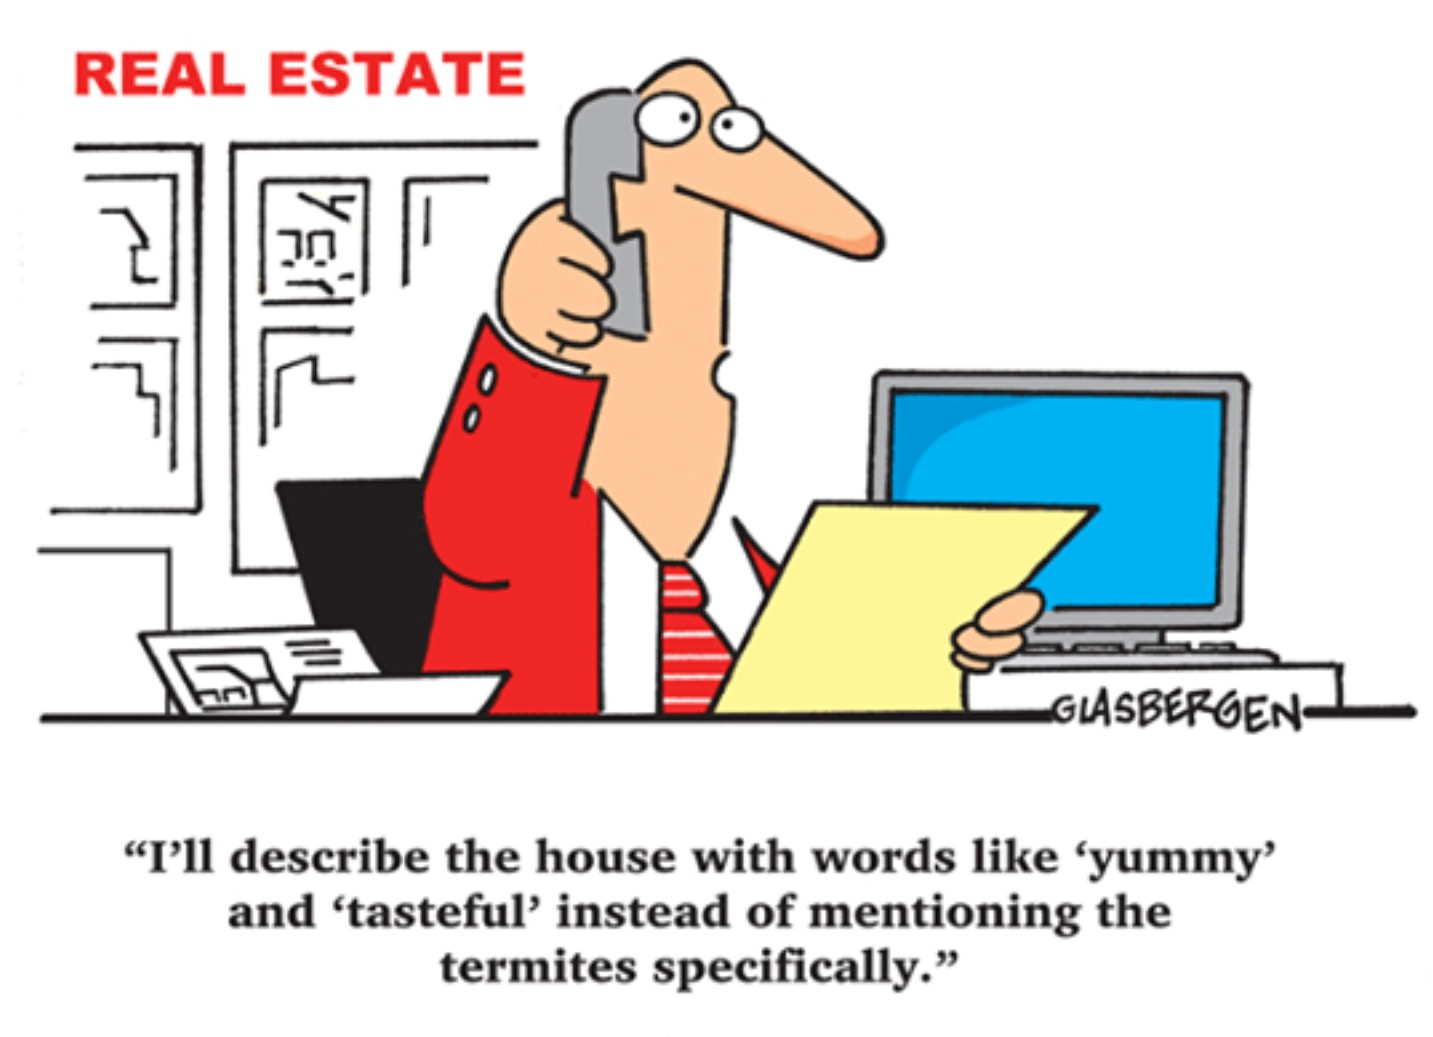 comic of realtor talking about termites